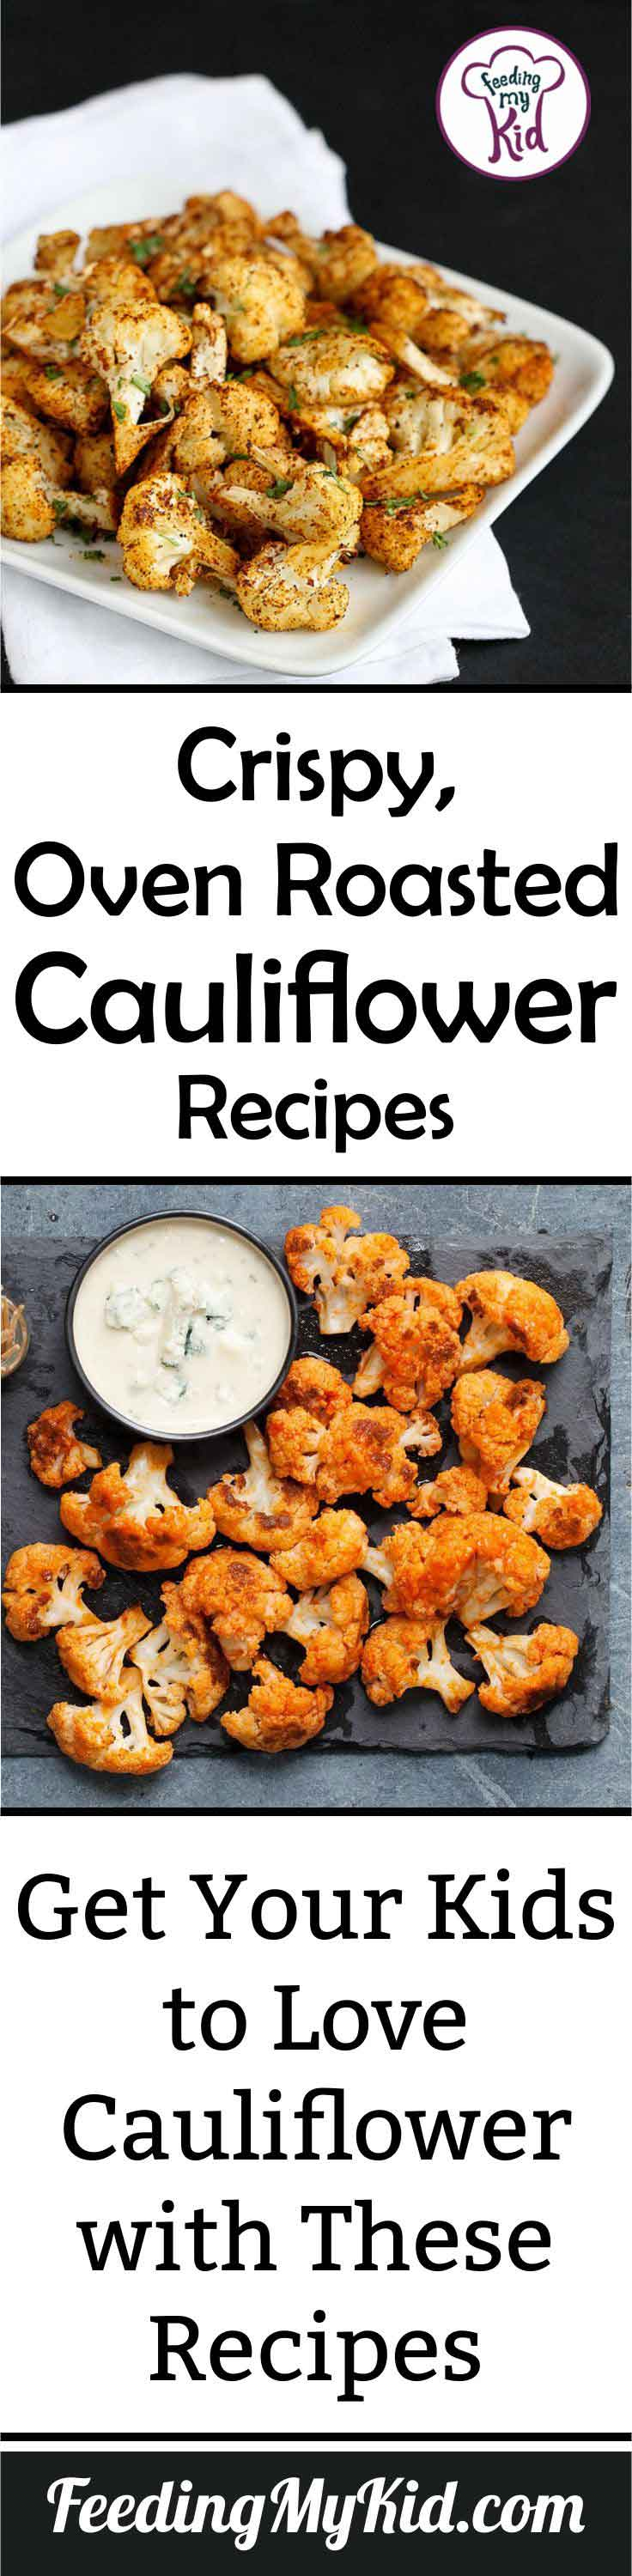 If you're not a fan of cauliflower, you've probably only eaten it steamed or raw. You need to try these oven roasted cauliflower recipes ASAP!